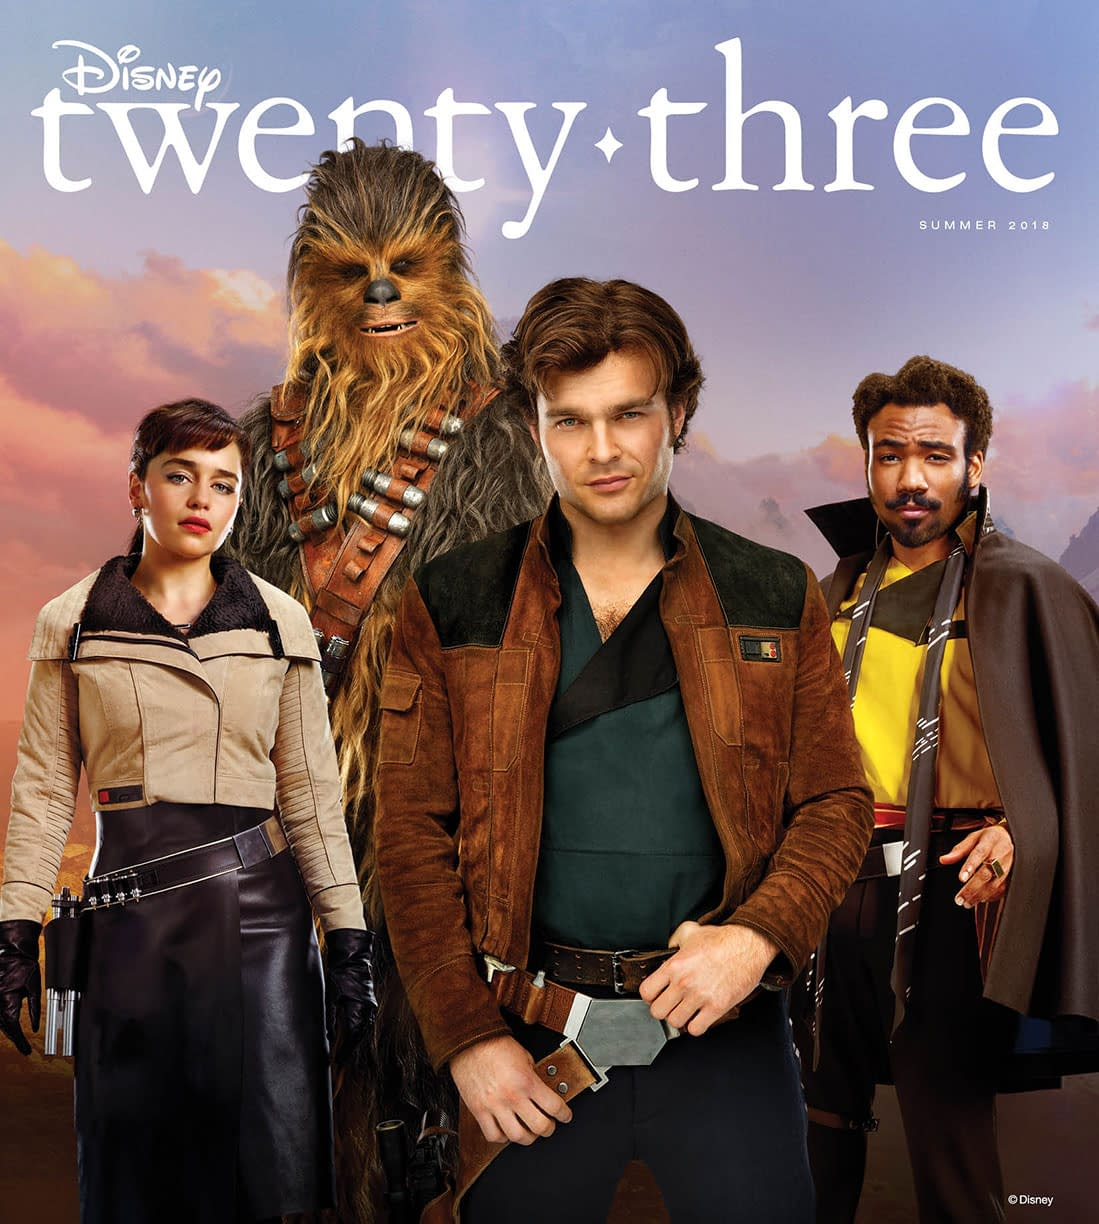 The Cast of Solo: A Star Wars Story Strikes a Pose on the Cover of Disney's Twenty-Three